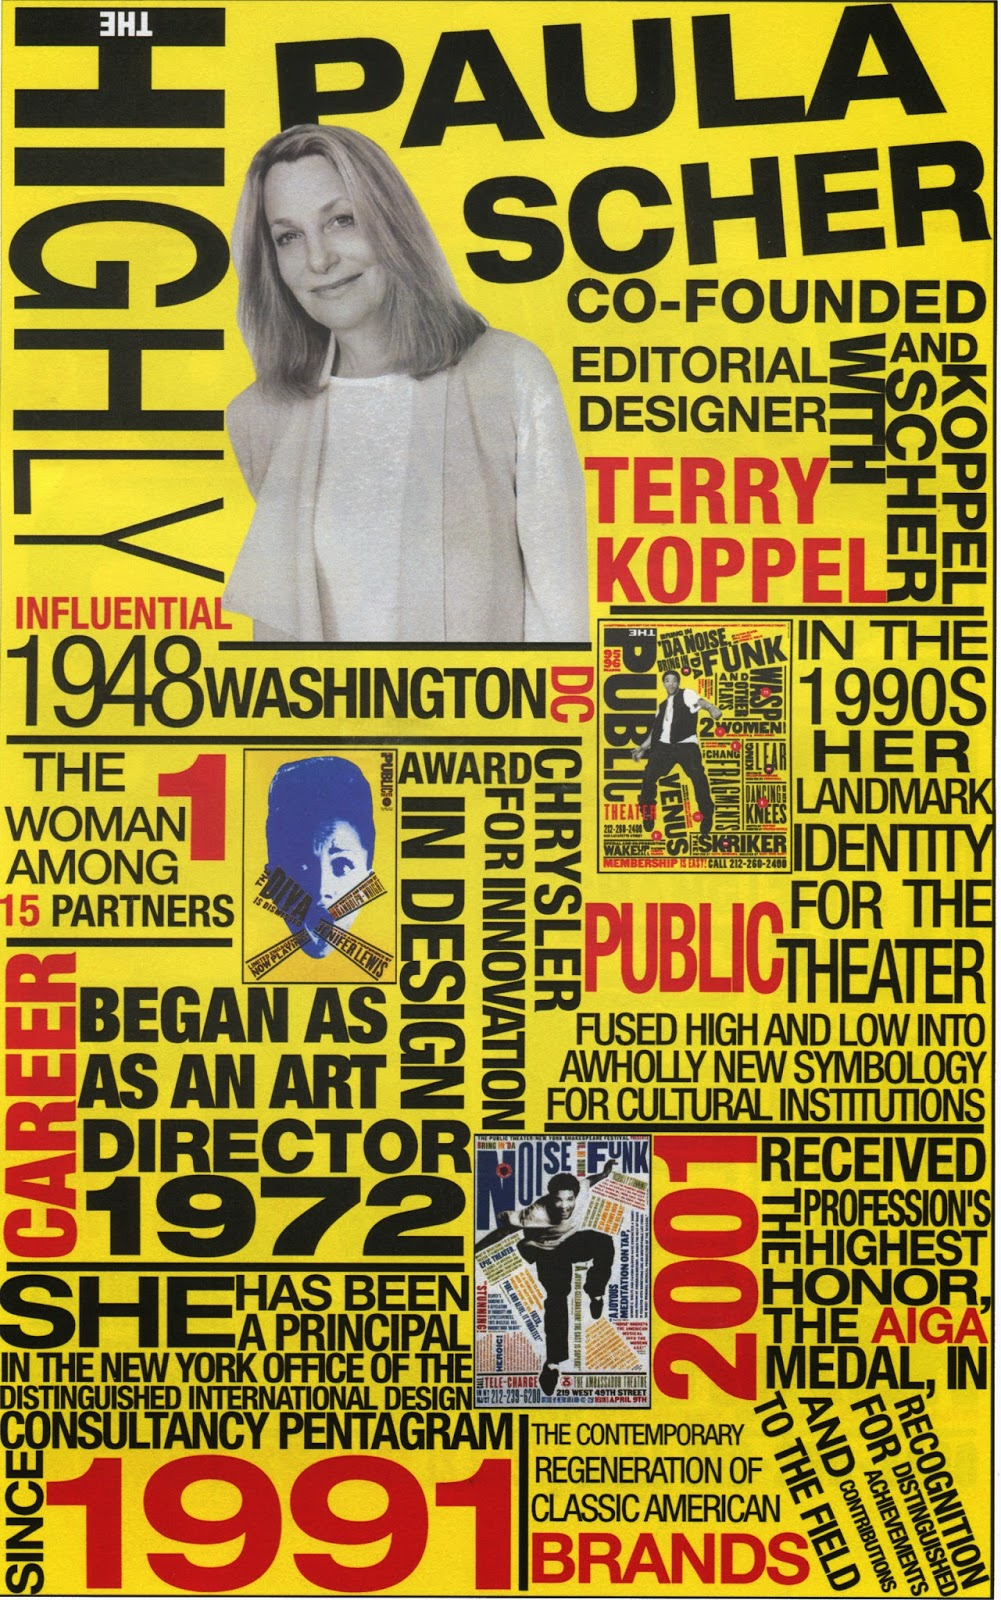 postmodern graphic designer paula scher essay Paula scher 1994 (postmodernism) language is a deadly weapon graphic for mtv's free your mind campaign find this pin and more on design history by jacksand921.